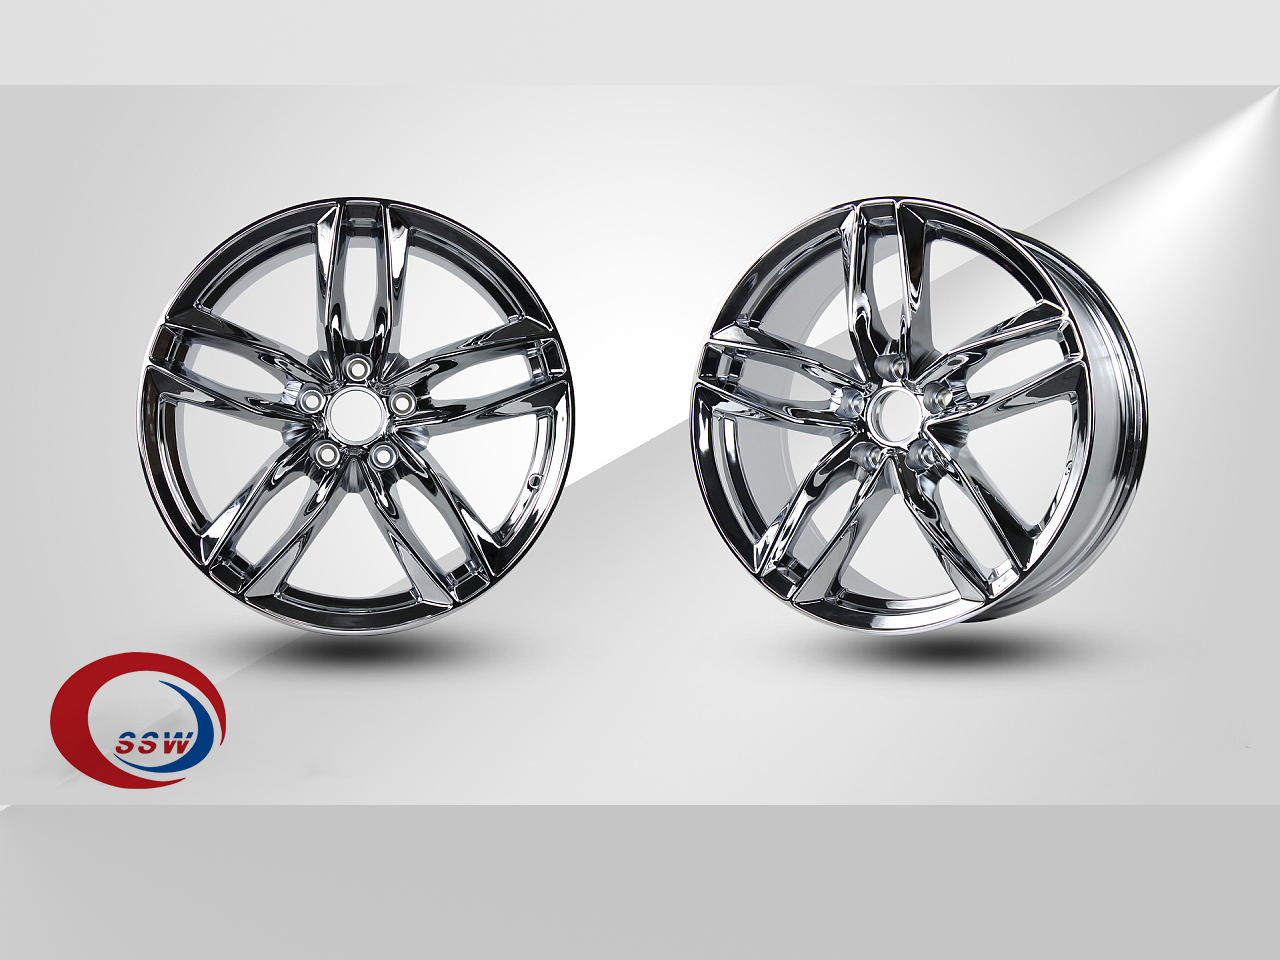 16-28 inches wheels aluminum alloy wheels a19